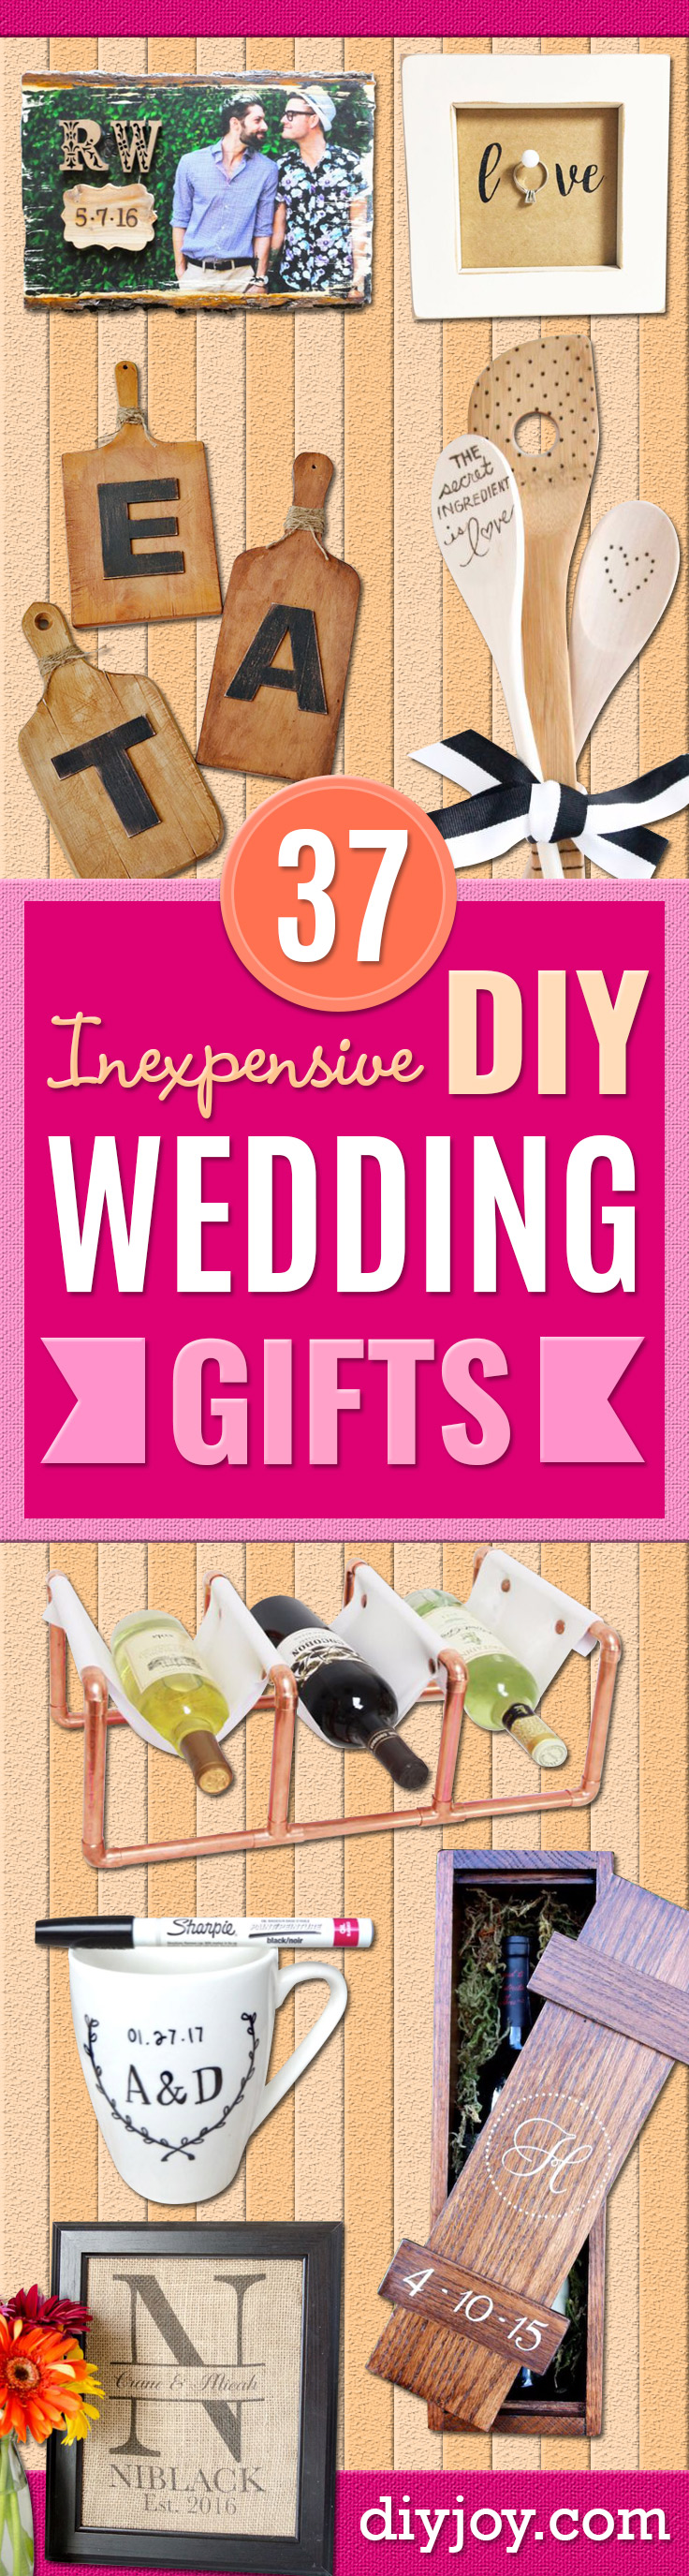 37 Expensive Looking Diy Wedding Gifts That Are Sure To Fit Your Budget